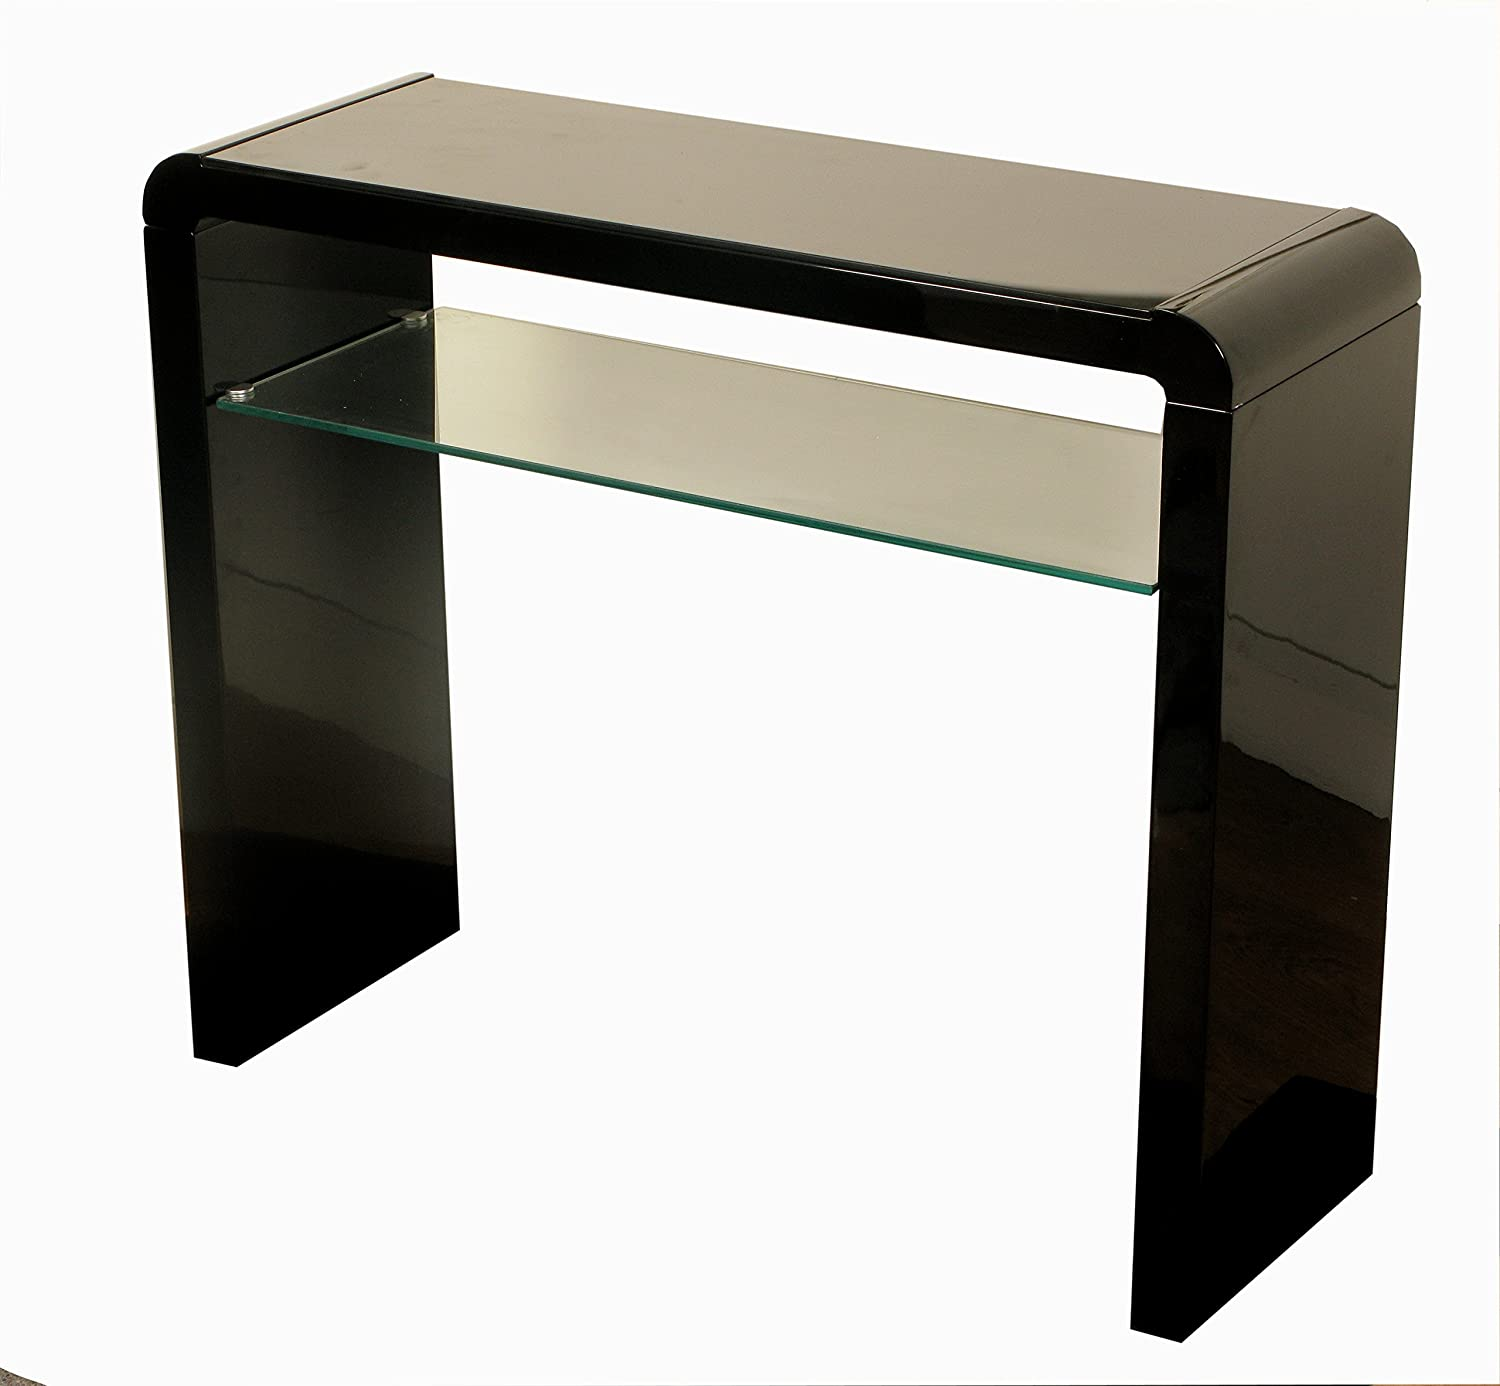 Modern black console table - Atlanta Black Console Hall Table With Shelf Living Room Modern Console Tables Houzz